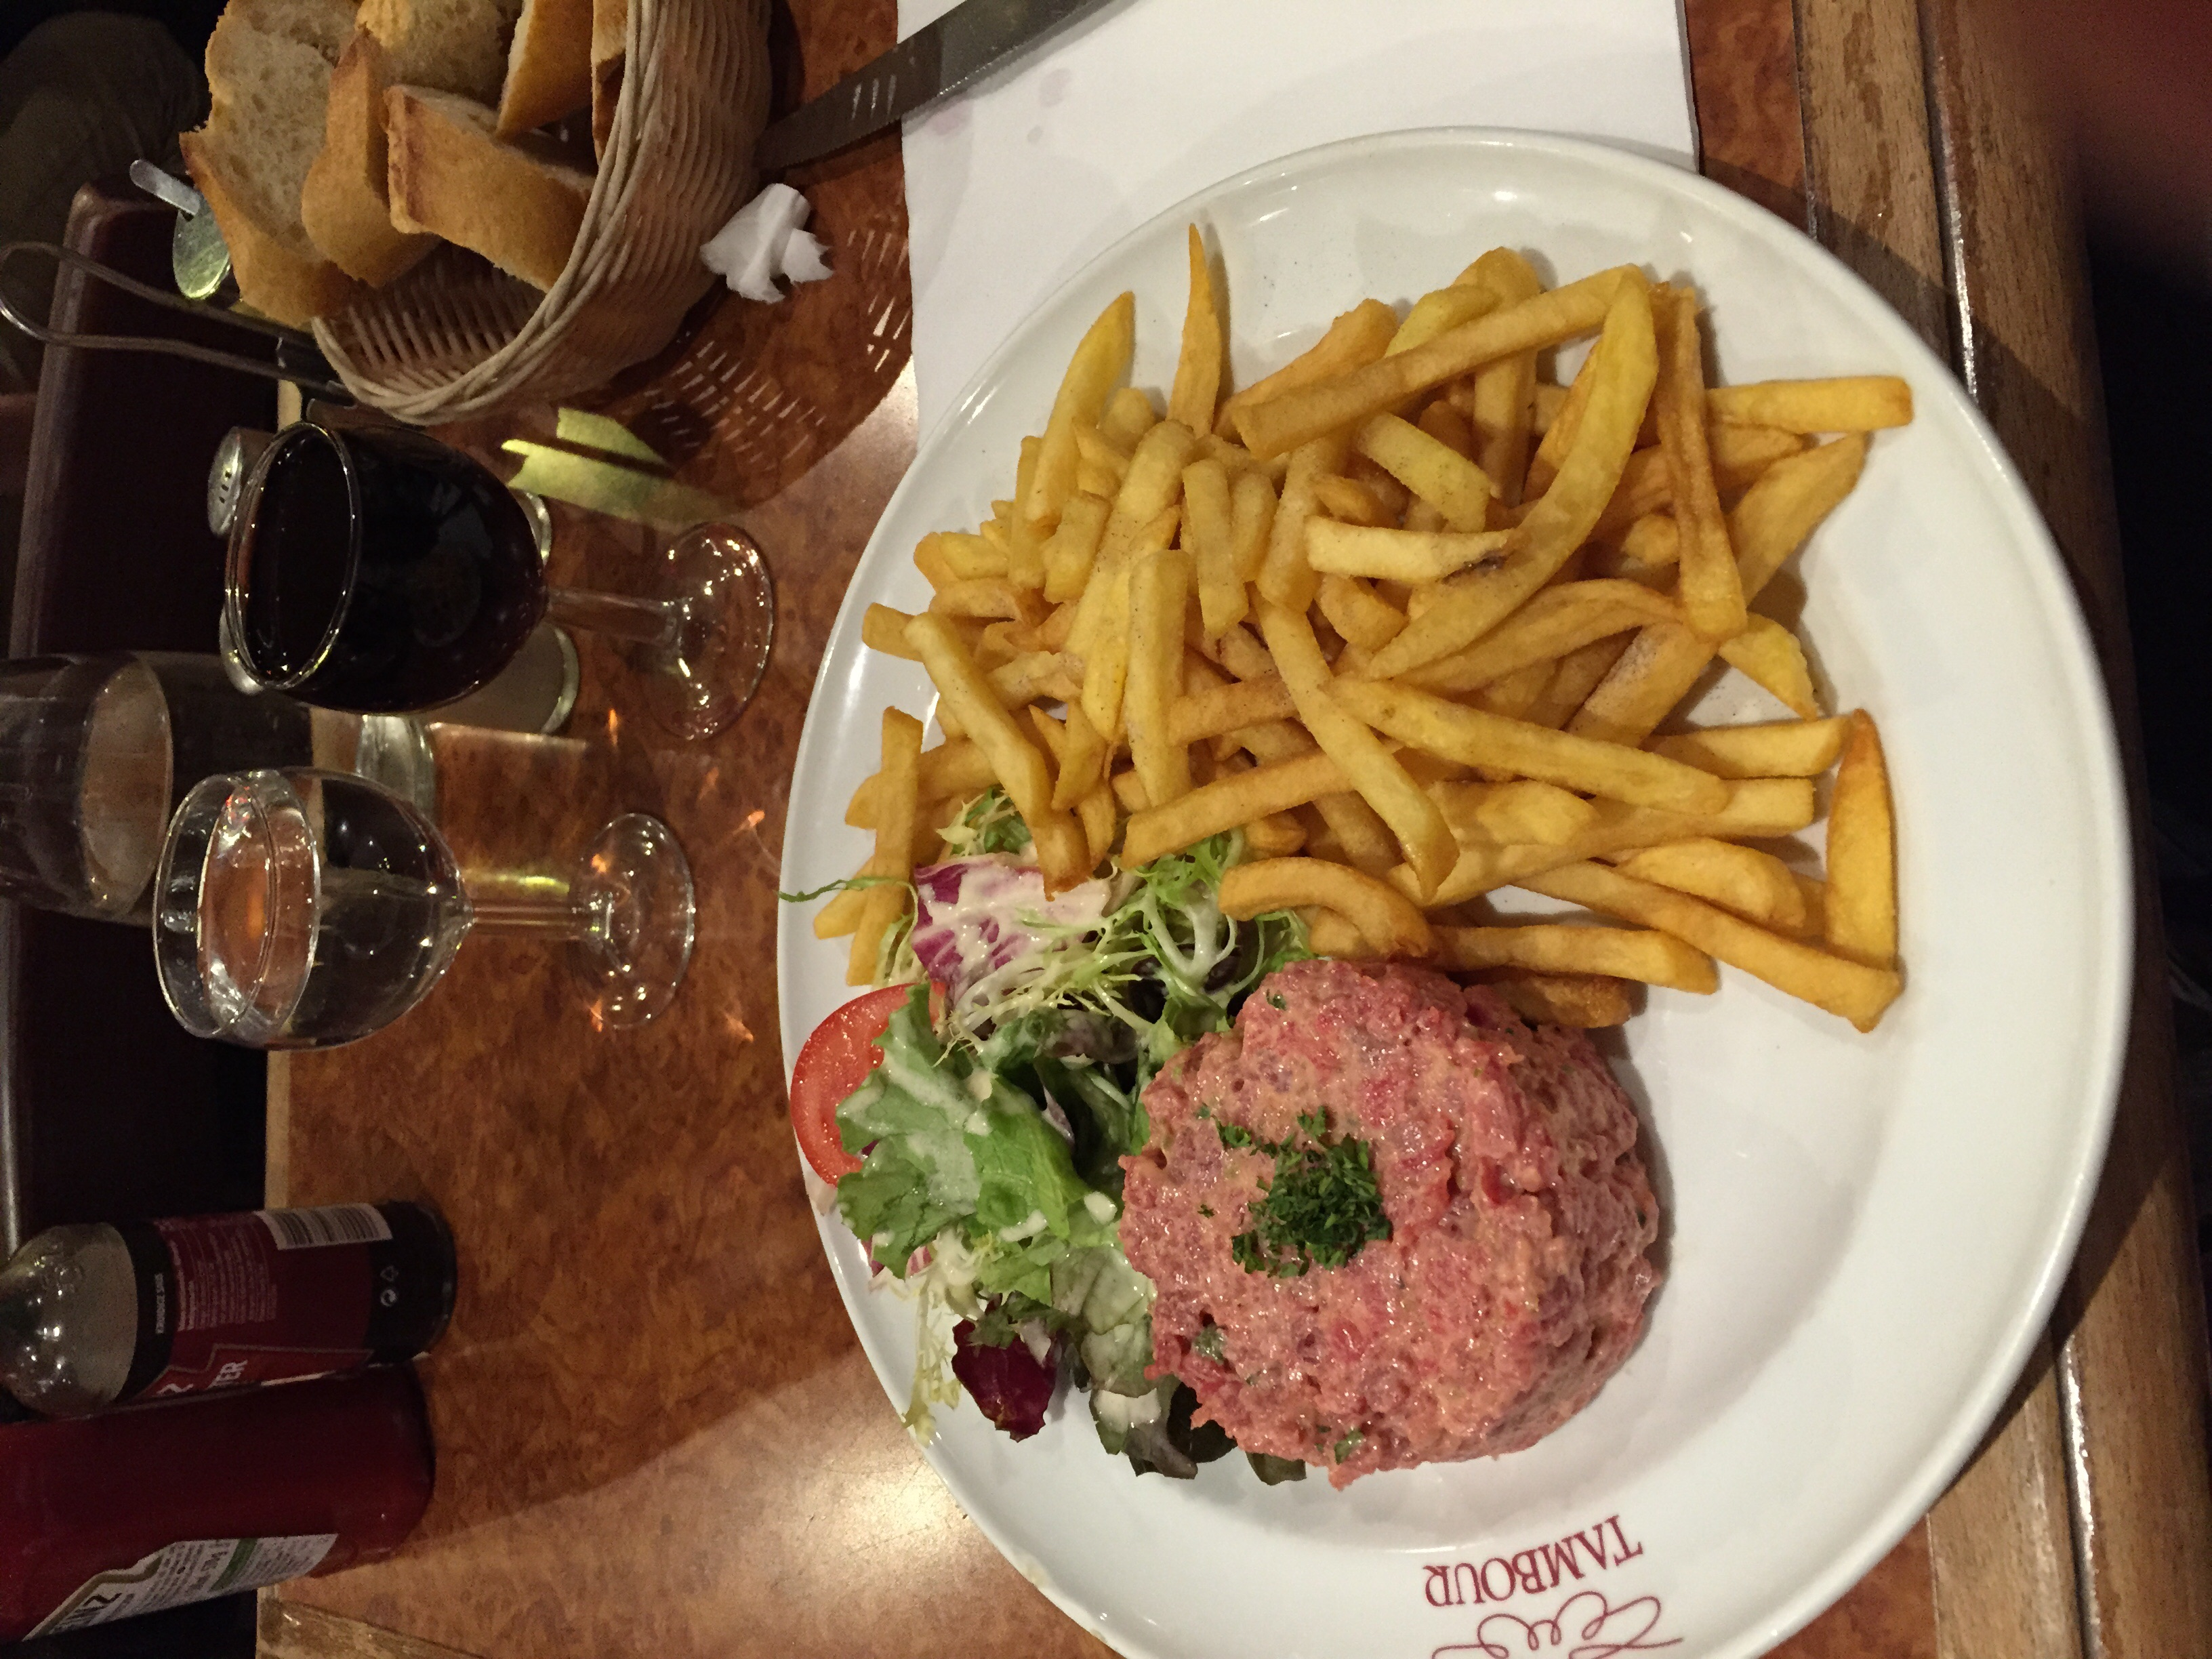 I've wanted to try this for years, beef tartae and frites. A Parisian classic.